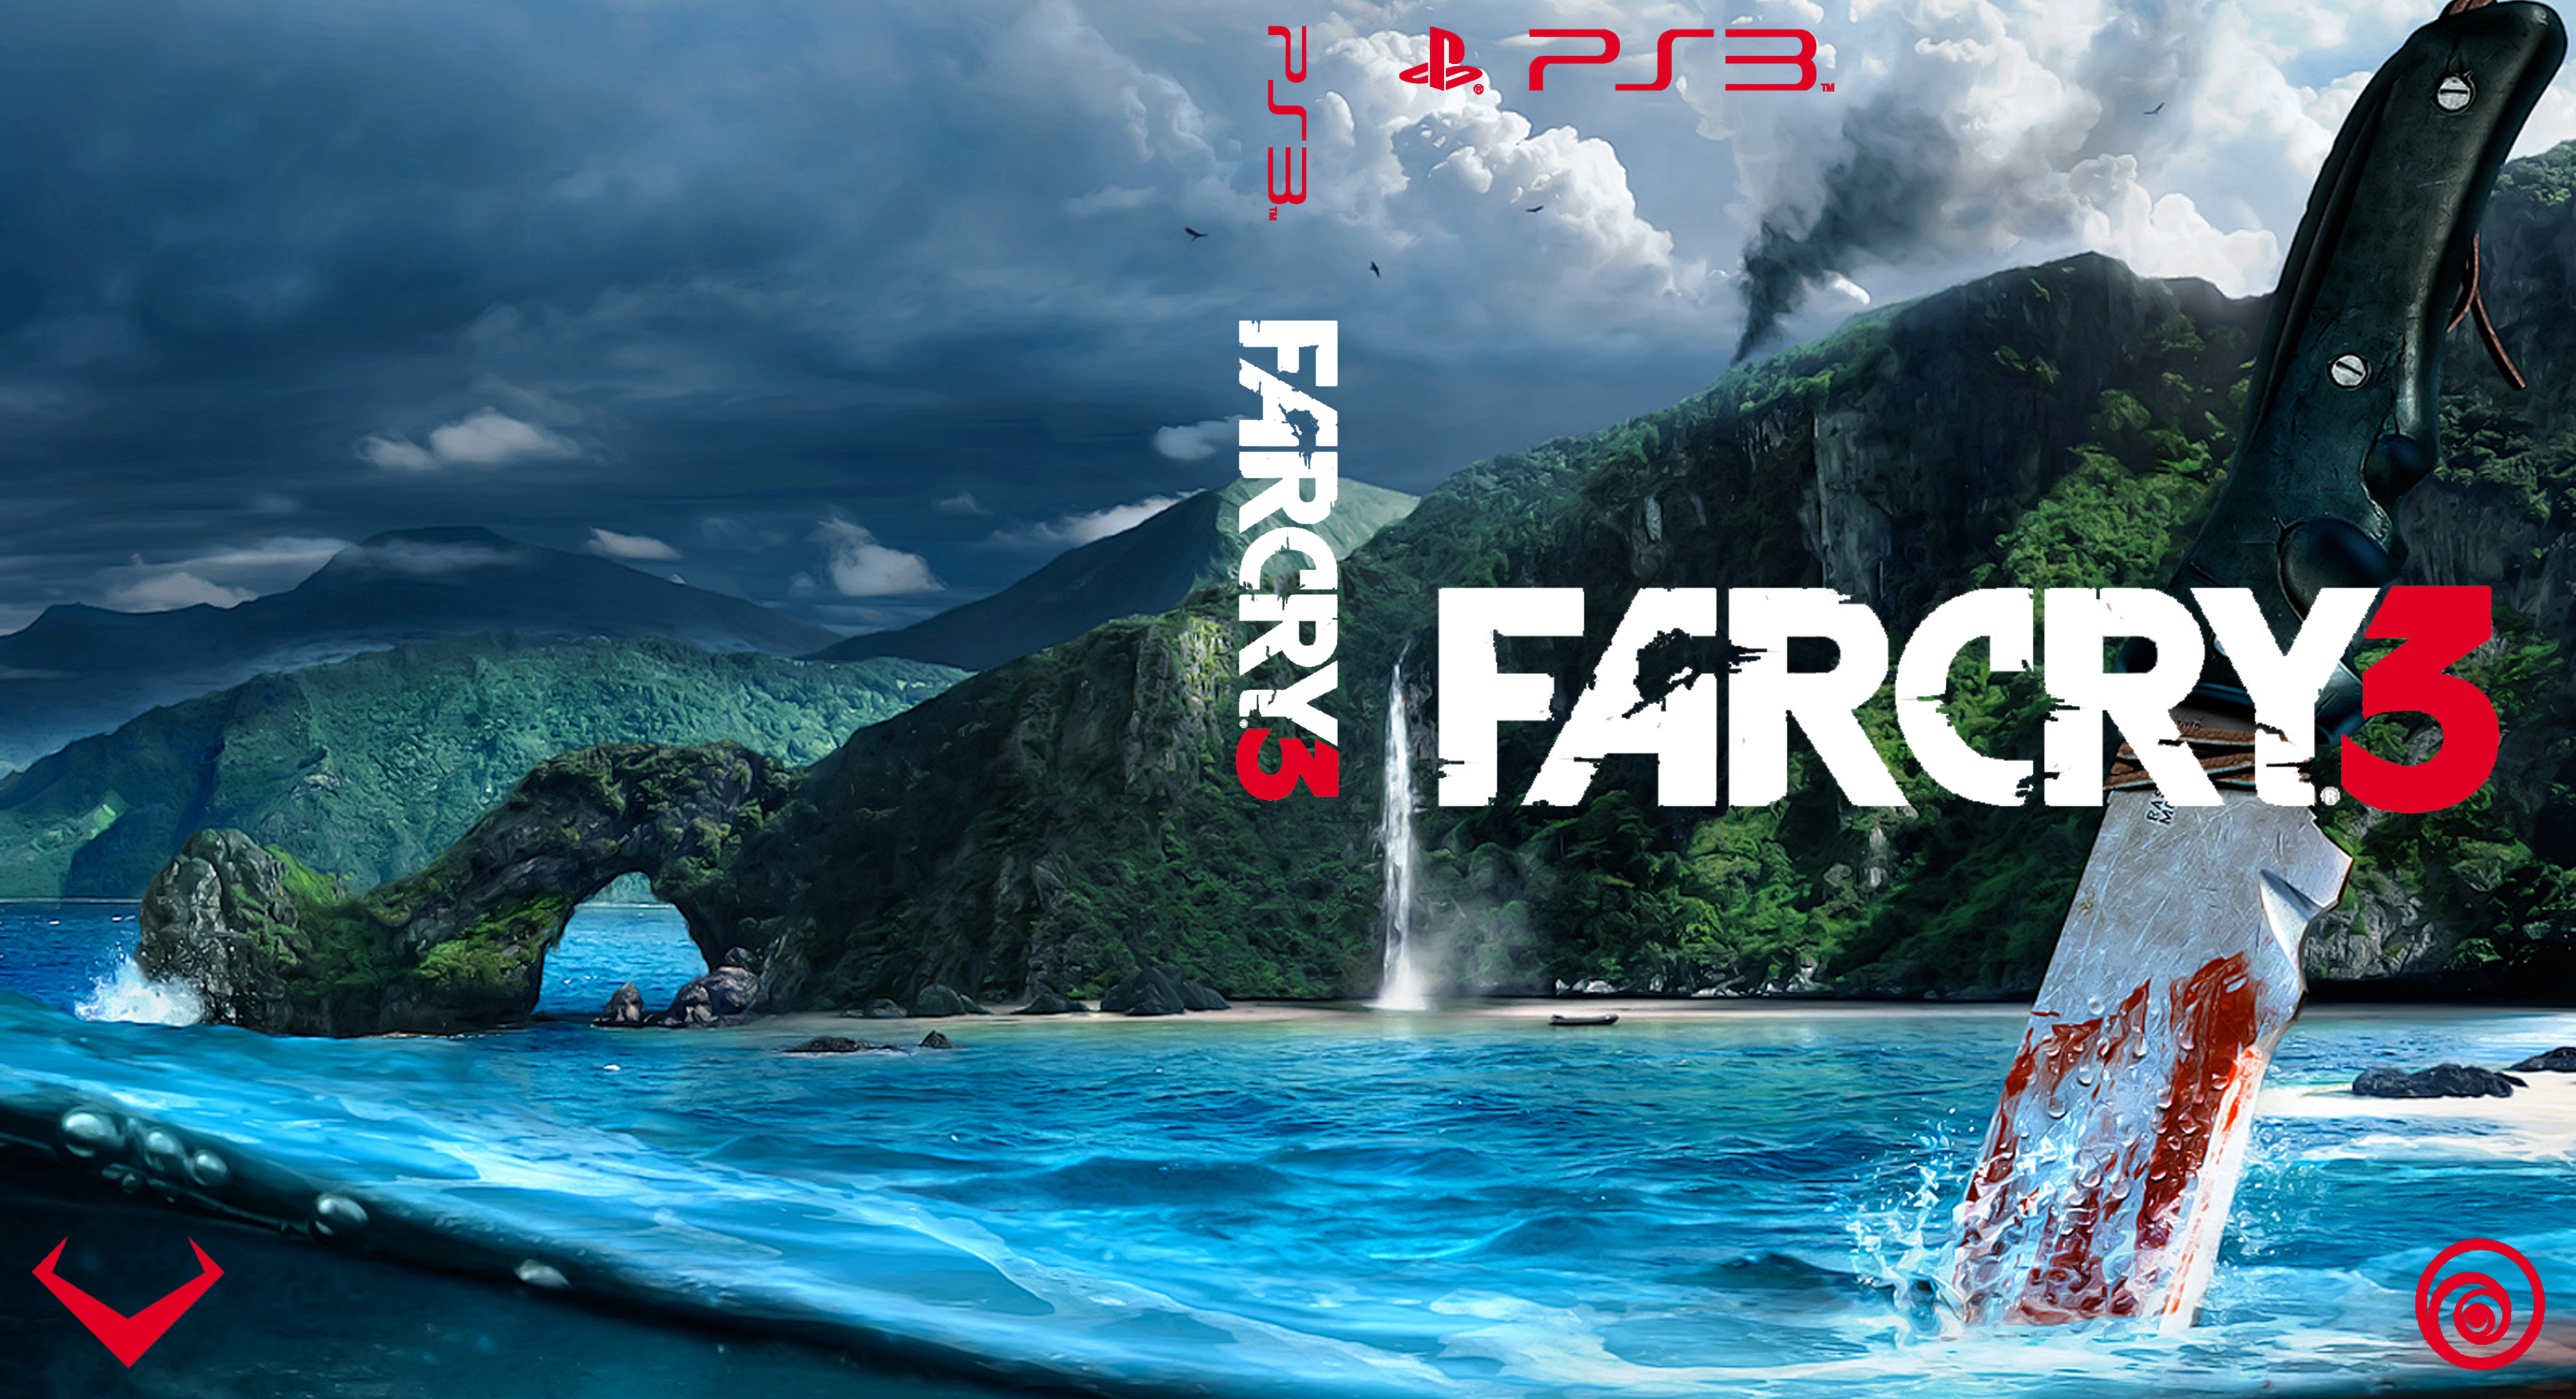 farcry 3 box art ps3 by rlbdesigns on deviantart